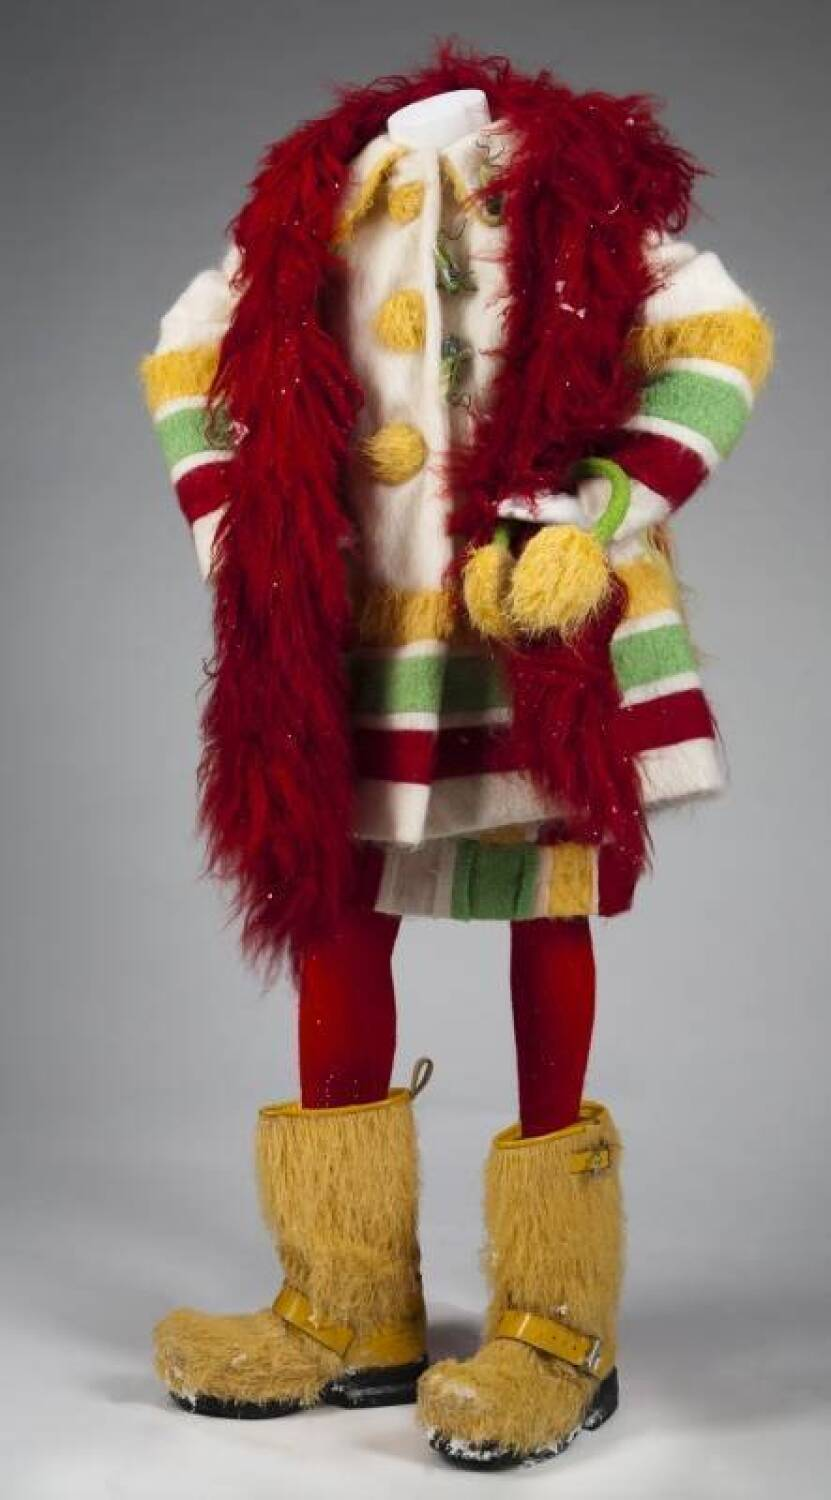 How The Grinch Stole Christmas June S Outfit Current